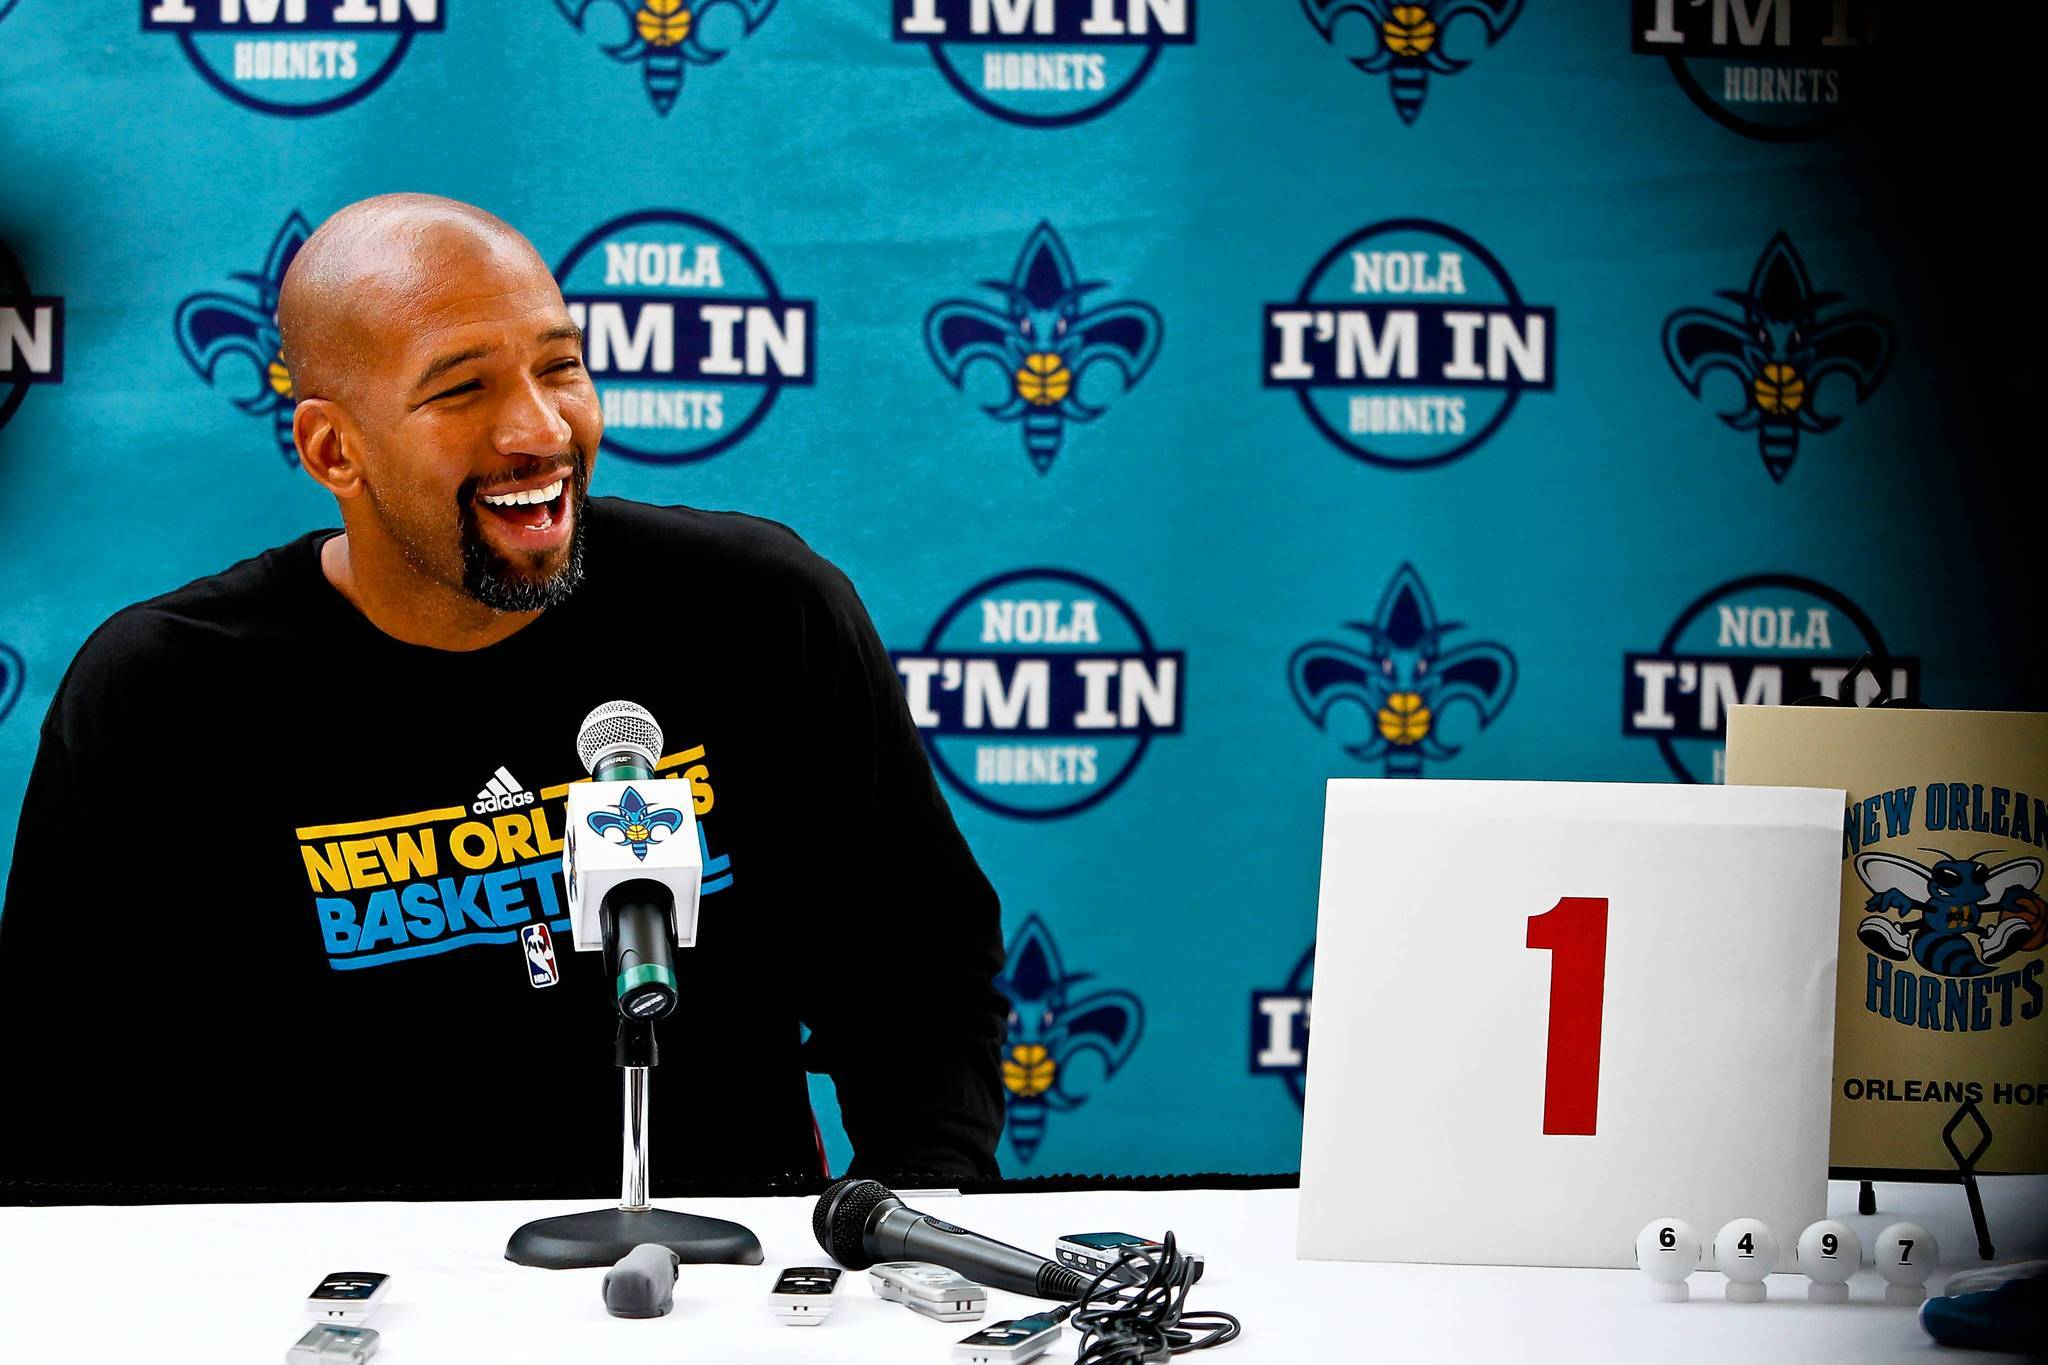 New Orleans Hornets head coach Monty Williams with the winning lottery ball combination (6-4-9-7) and the winning envelope from the NBA draft lottery during a press conference at the Alario Center on Friday. (Derick E. Hingle-US PRESSWIRE)